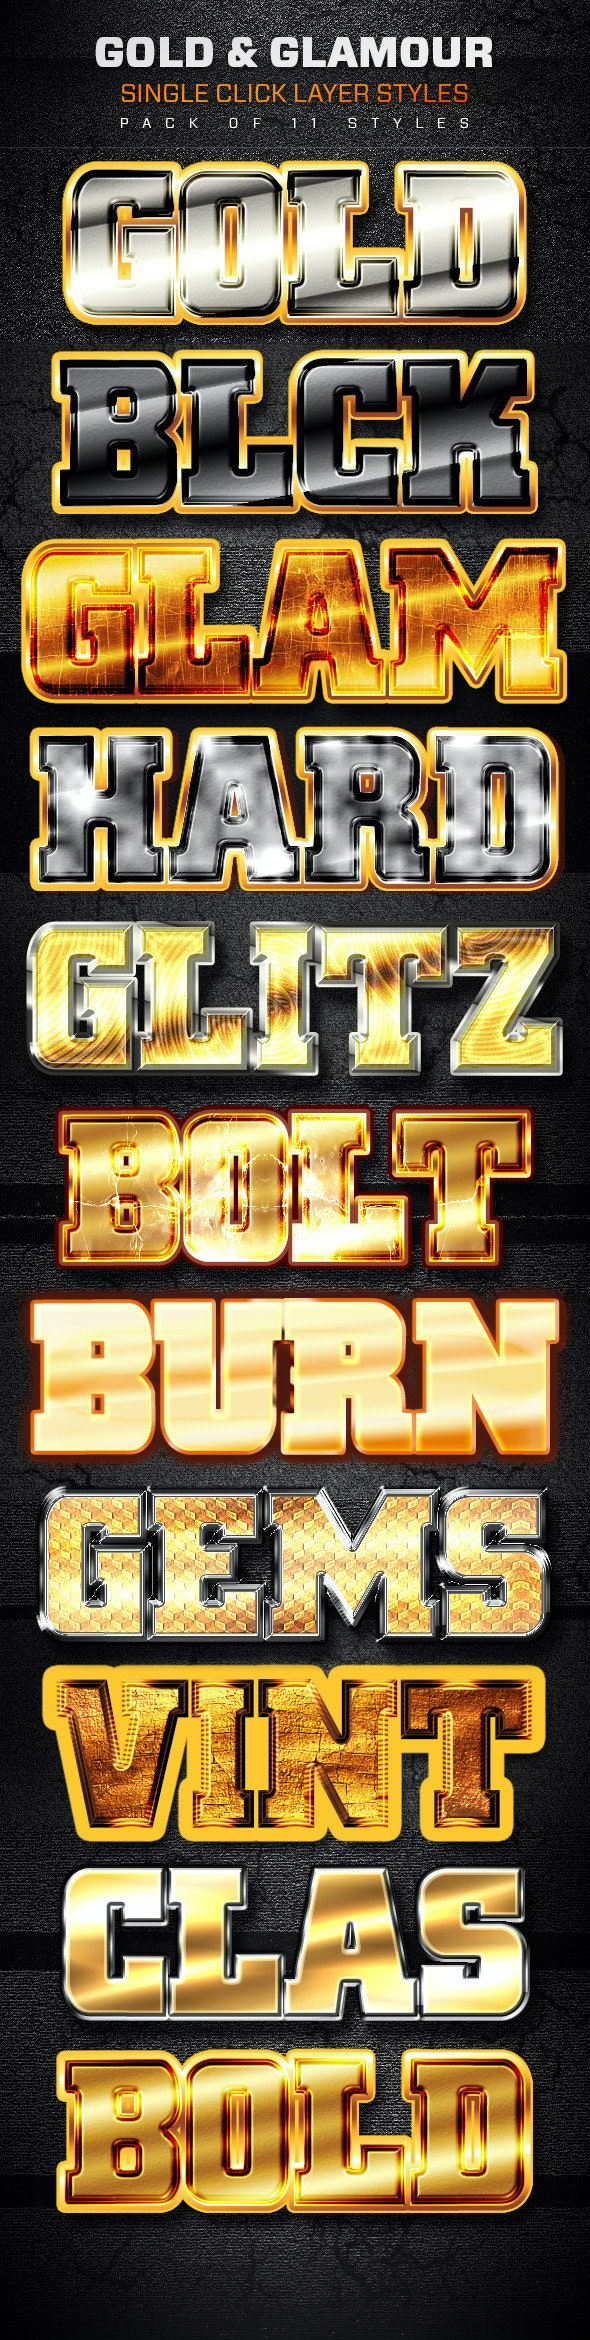 Gold and Glamour Layer Styles - Text Effects Styles